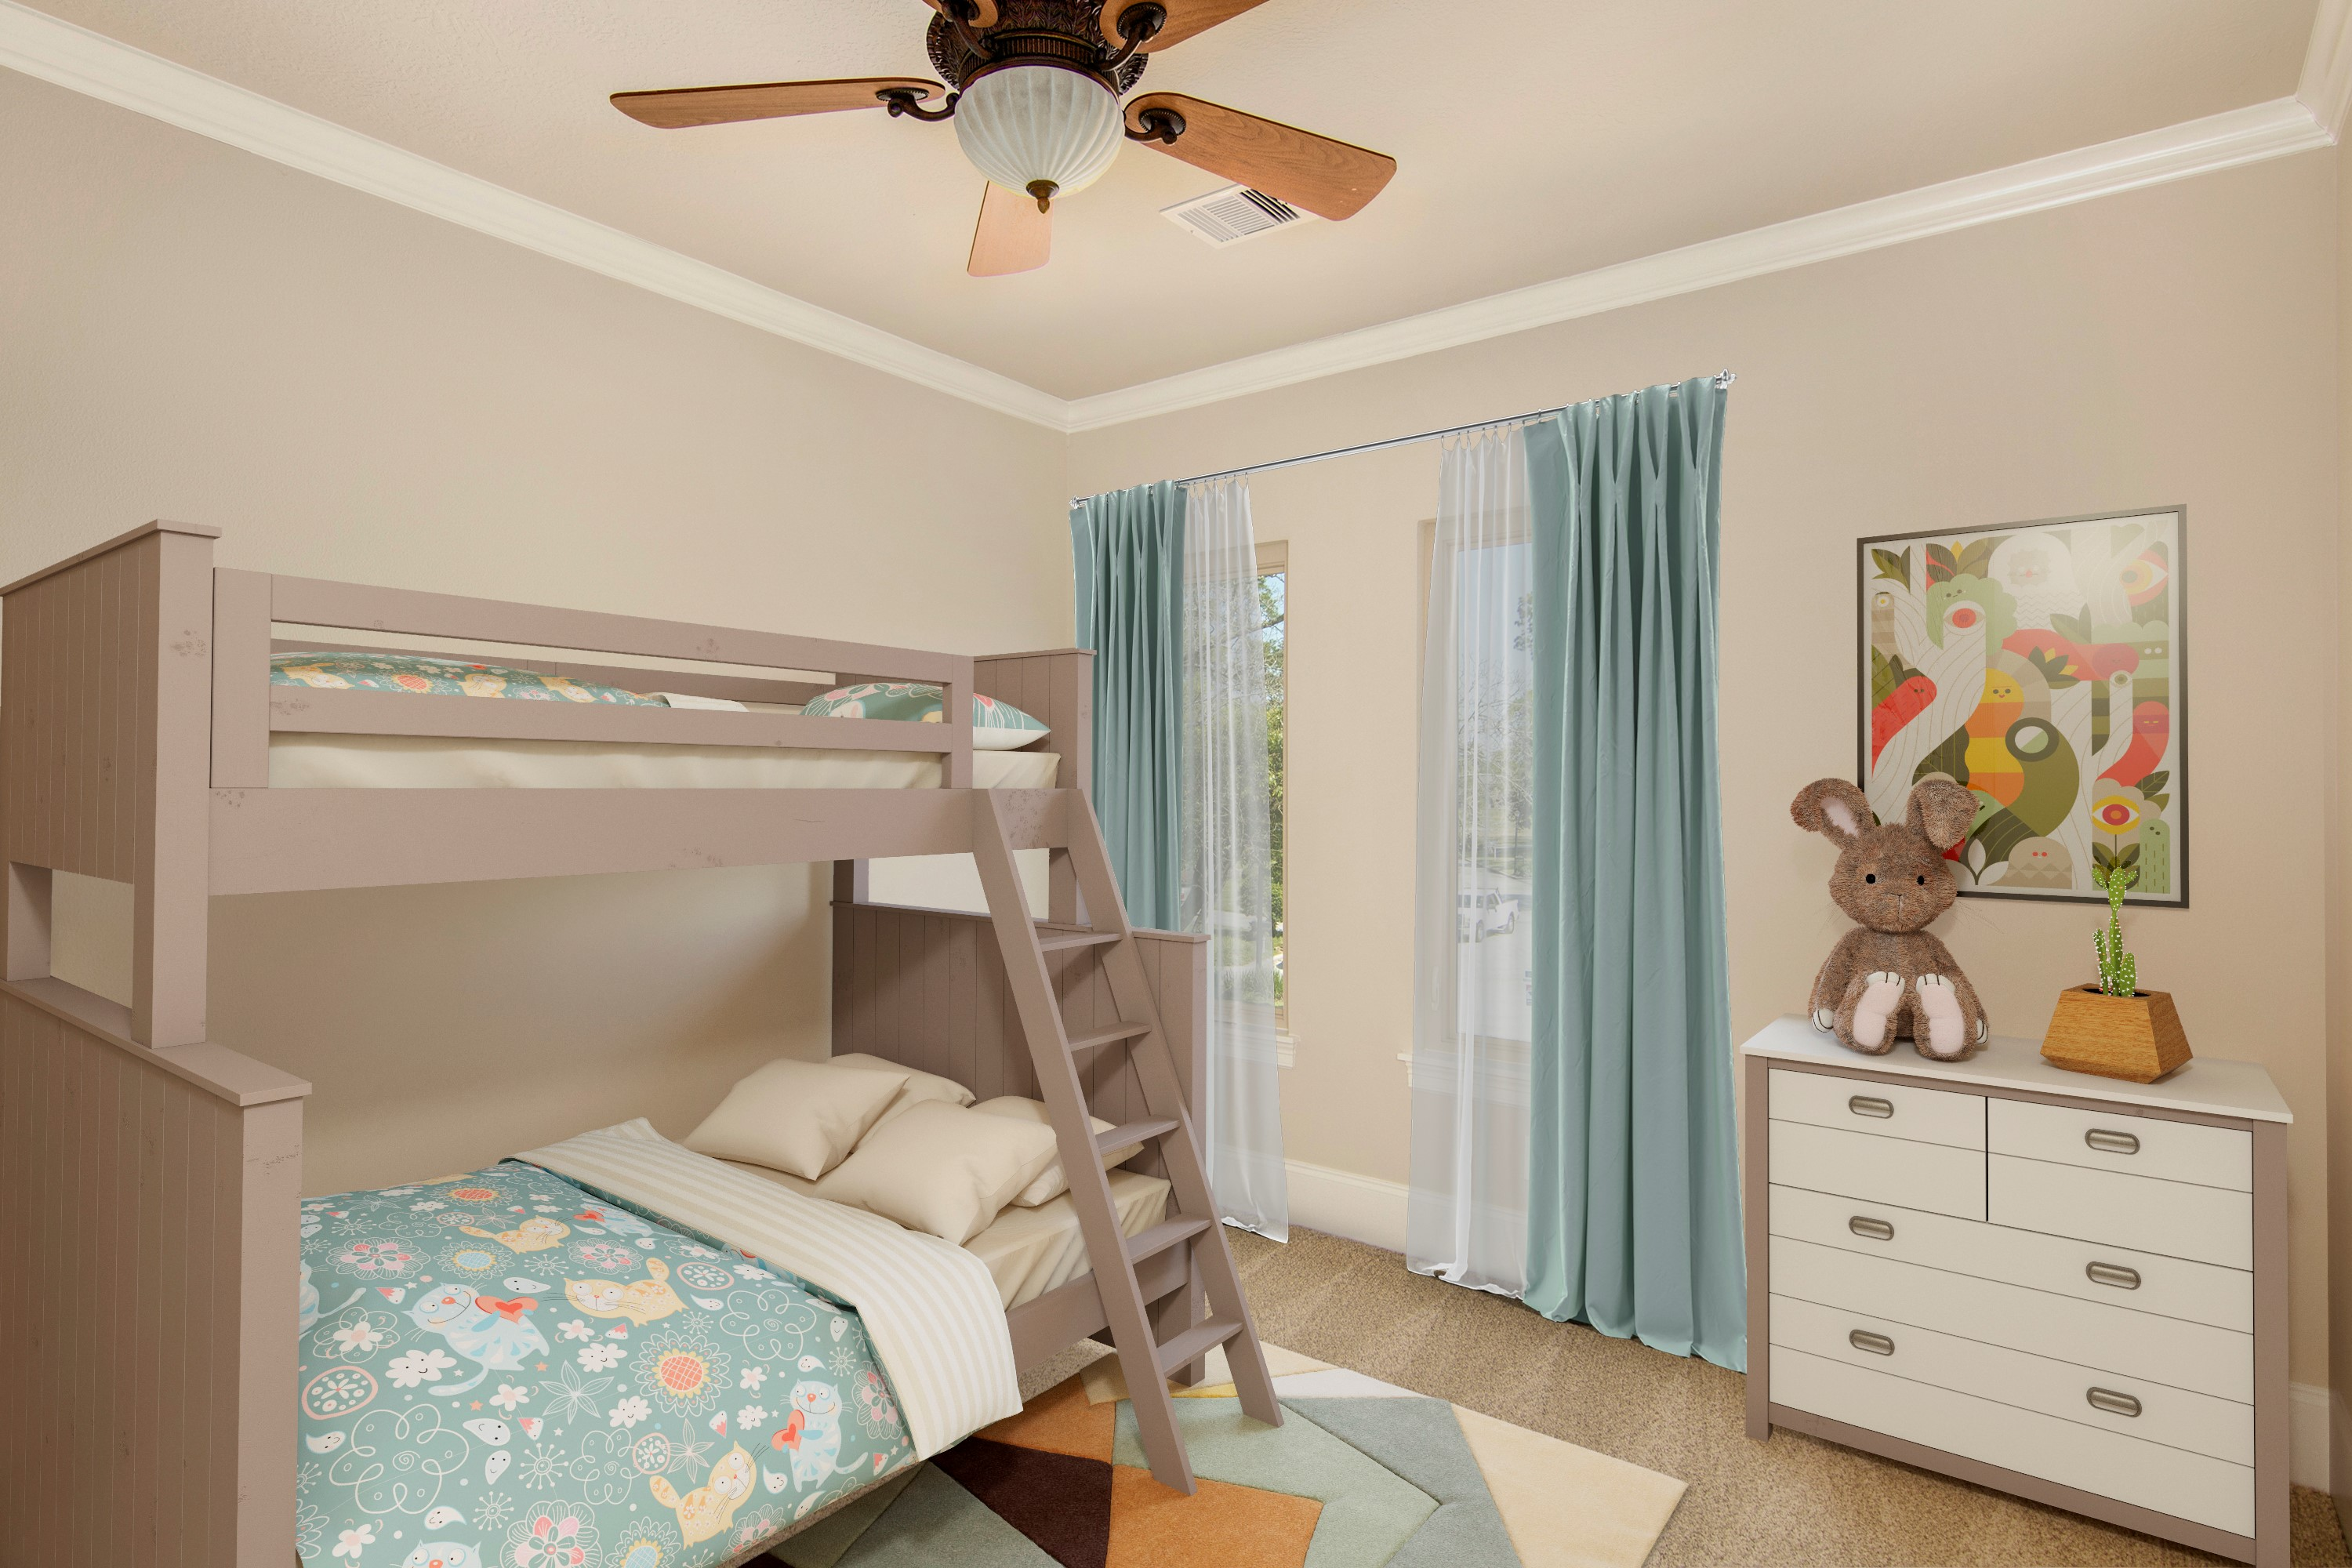 Seabrook, TX virtual staging photographer